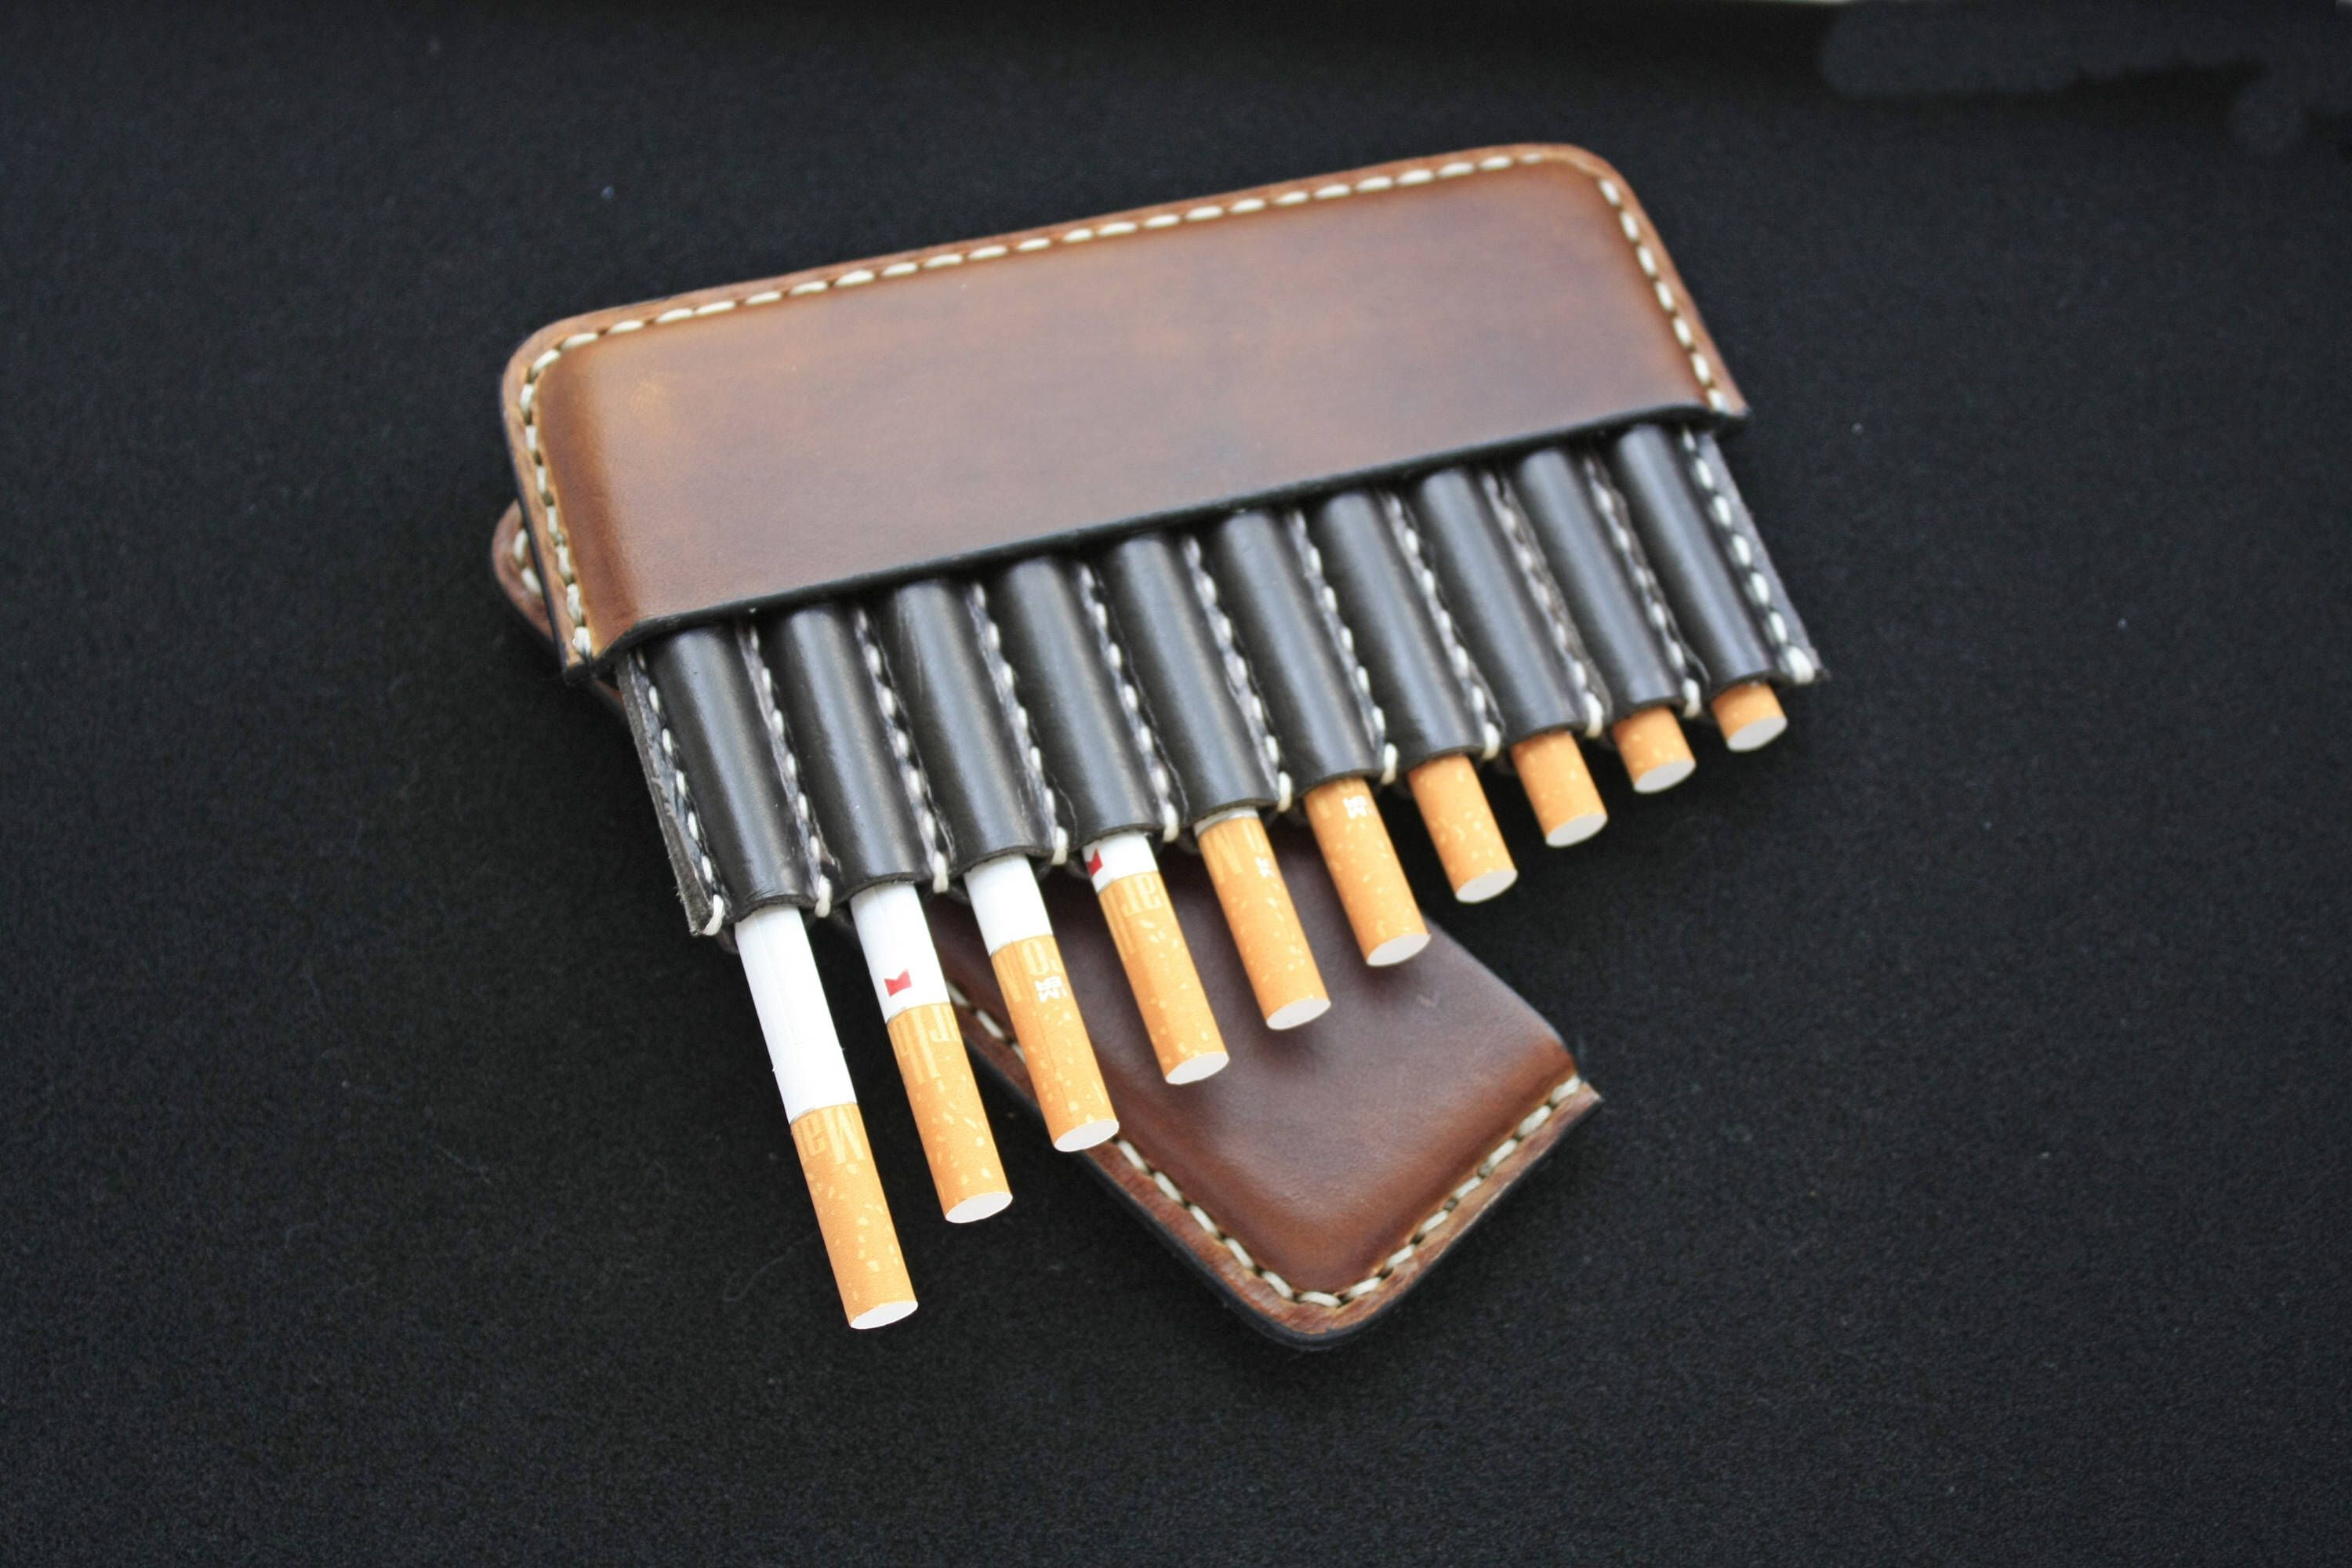 Excited to share the latest addition to my #etsy shop: SALE! Leather cigarette case, Christmas gift, Gifts for smokers, Tobacco pouch, cigarette holder, Vintage Leather Cigarette Case #bagsandpurses #cigaretteholder #cigarettecase #leathercigarette #brownleathercase #tobacciana #handmadecase #smallleathercase #vintageleathercase